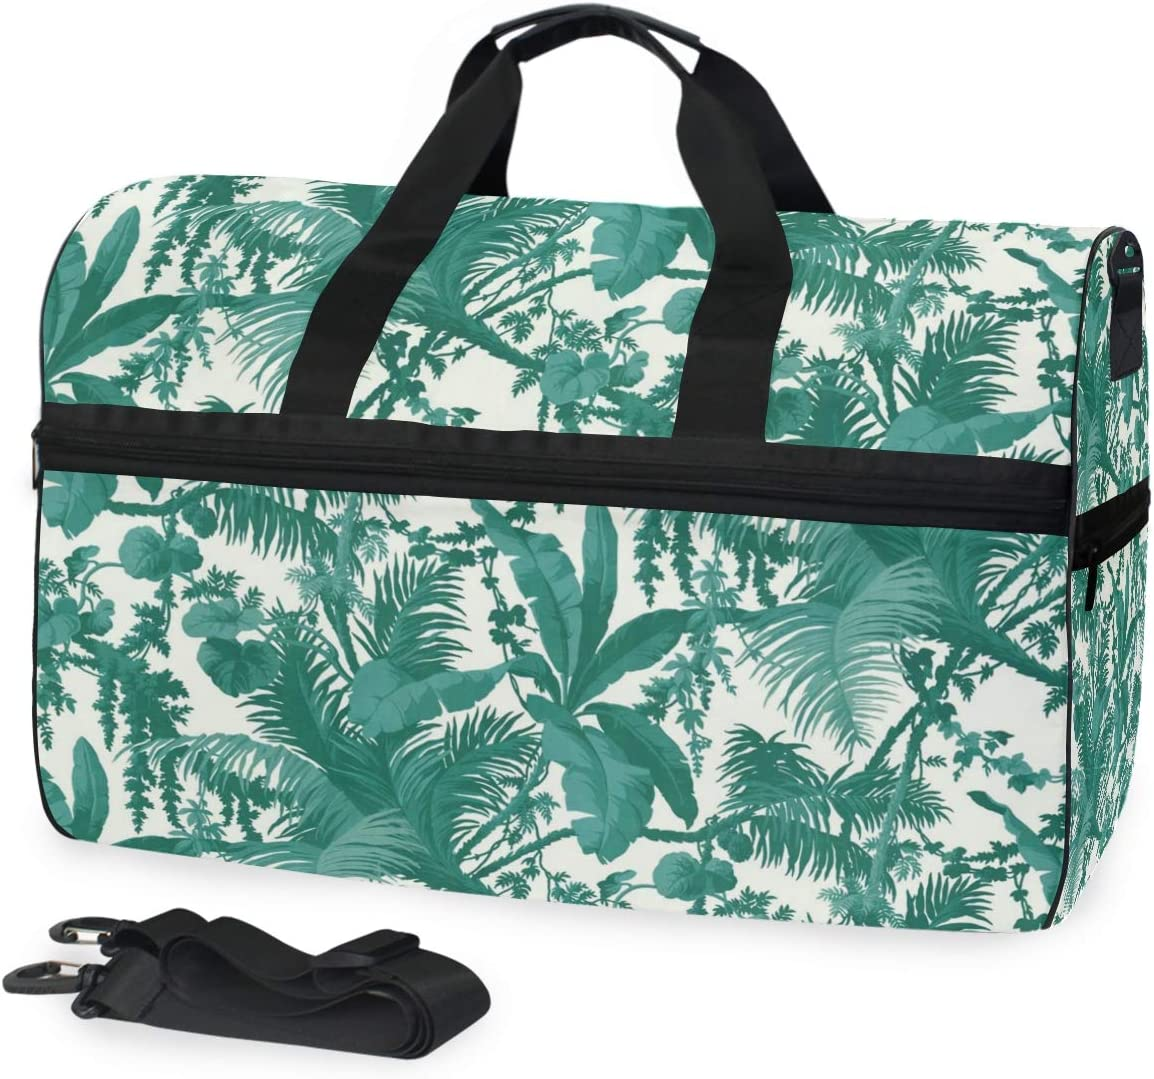 FAJRO Gym Bag Travel Duffel Express Weekender Bag Dark Green Leaves And Trees Pattern Carry On Luggage with Shoe Pouch